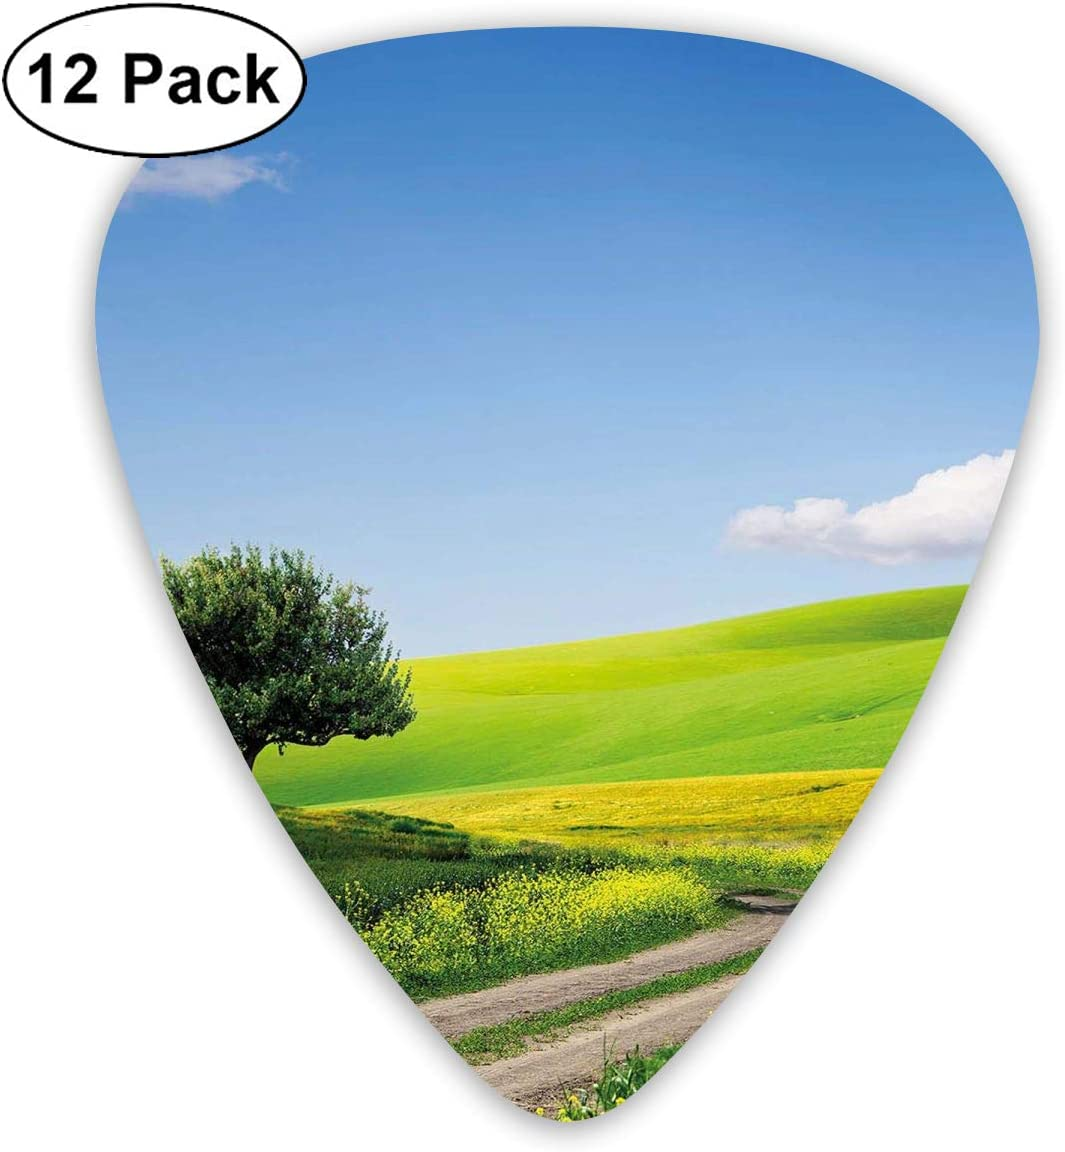 Guitar Picks12pcs Plectrum (0.46mm-0.96mm), Rural Country Scenery With Floral Grass Field Tree Idyllic Landscape,For Your Guitar or Ukulele